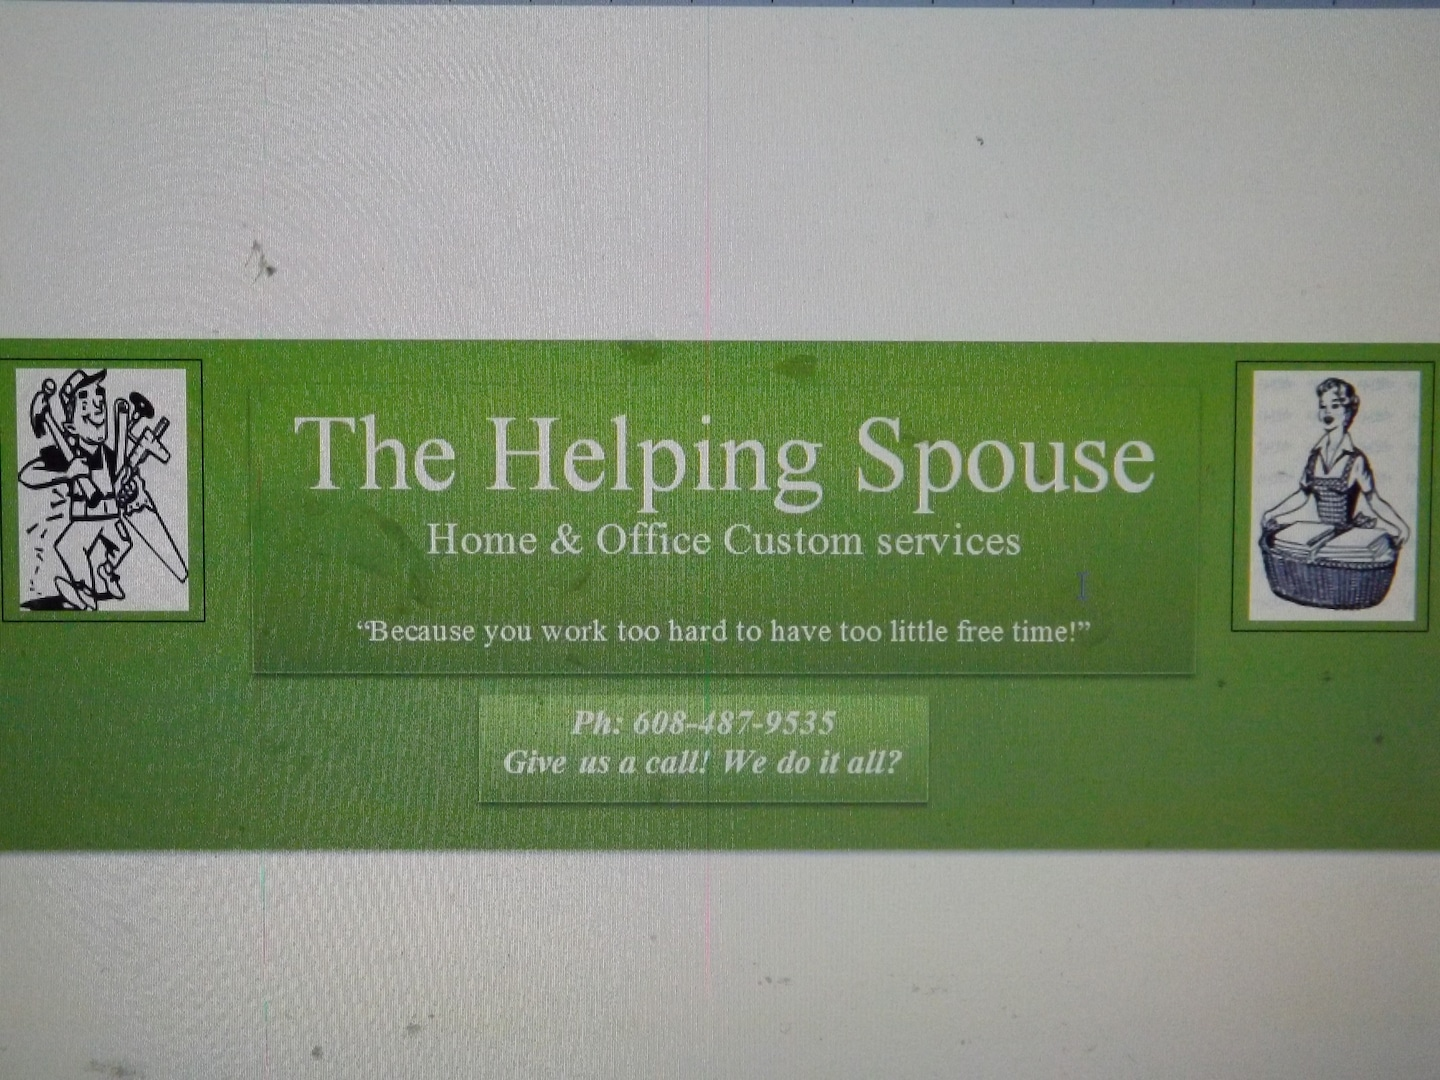 The Helping Spouse LLC